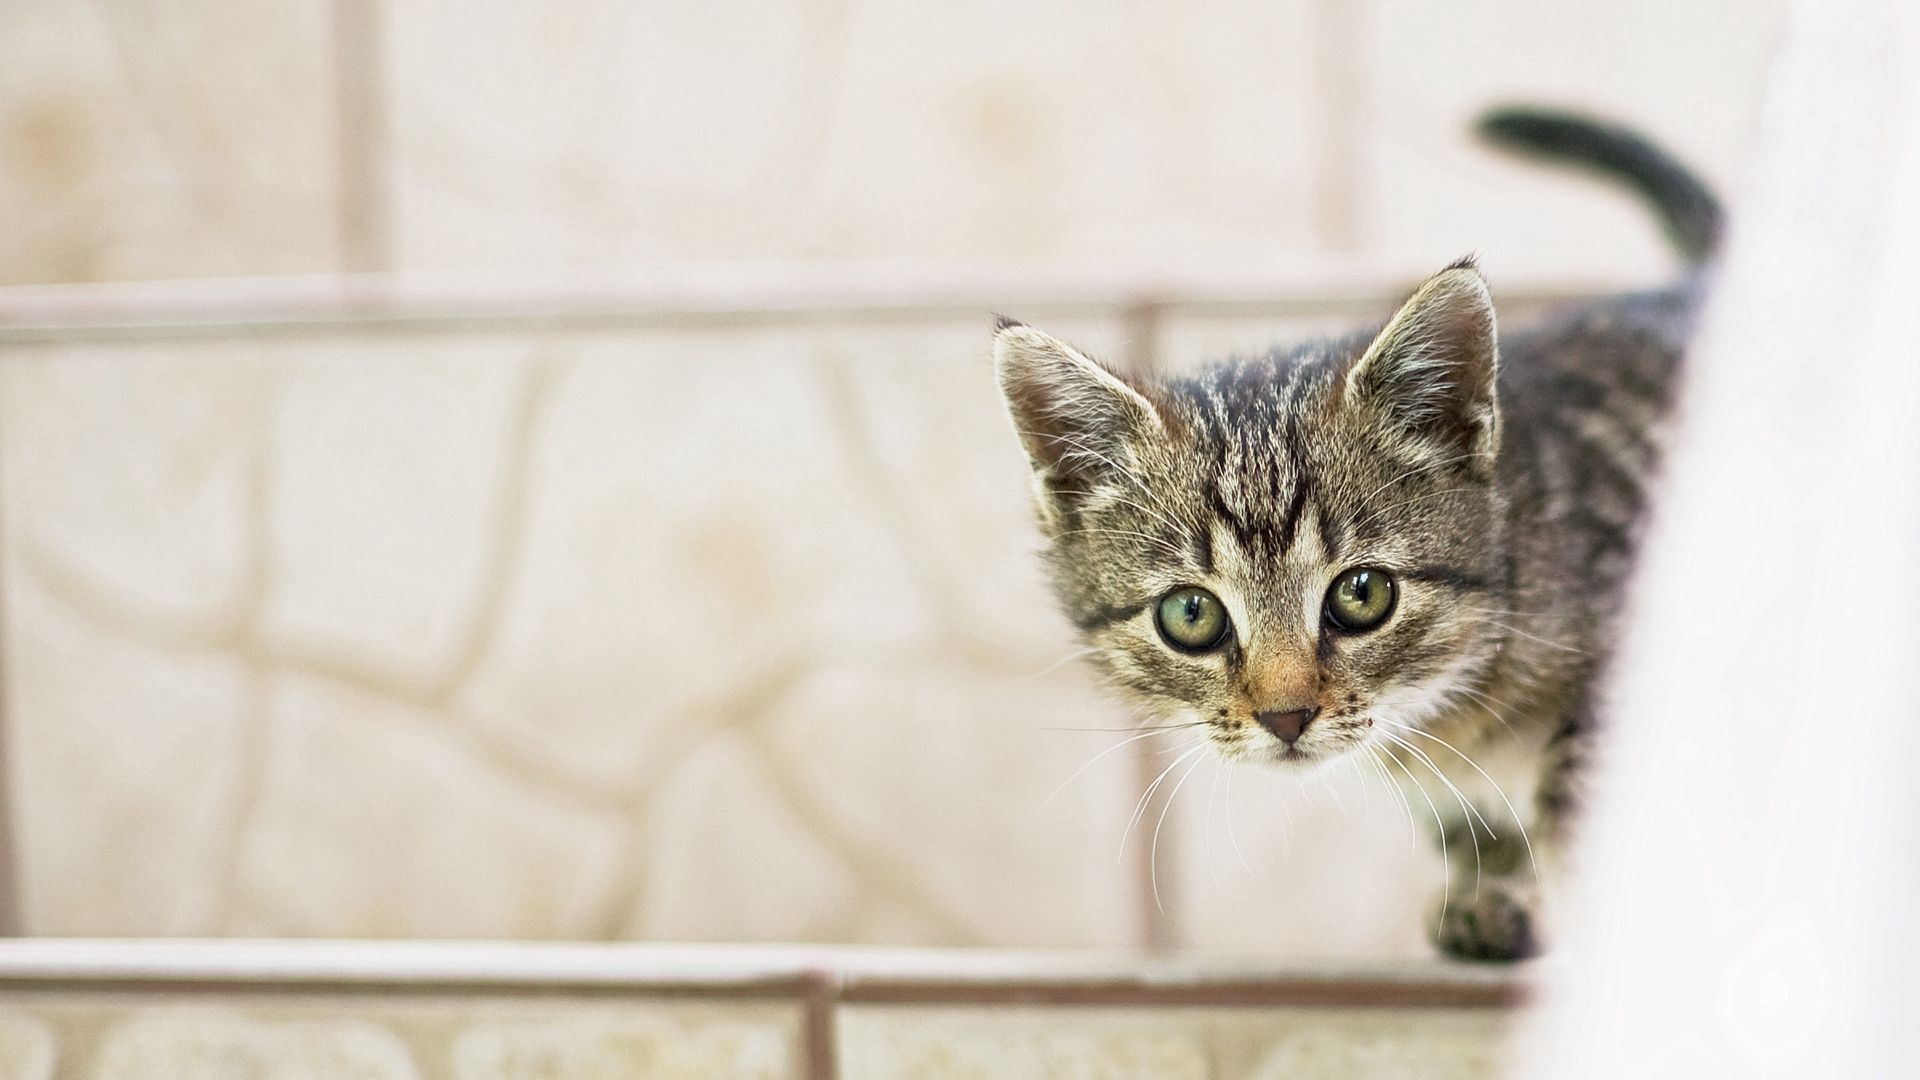 145398 download wallpaper Animals, Kitty, Kitten, Kid, Tot, Peek Out, Look Out screensavers and pictures for free